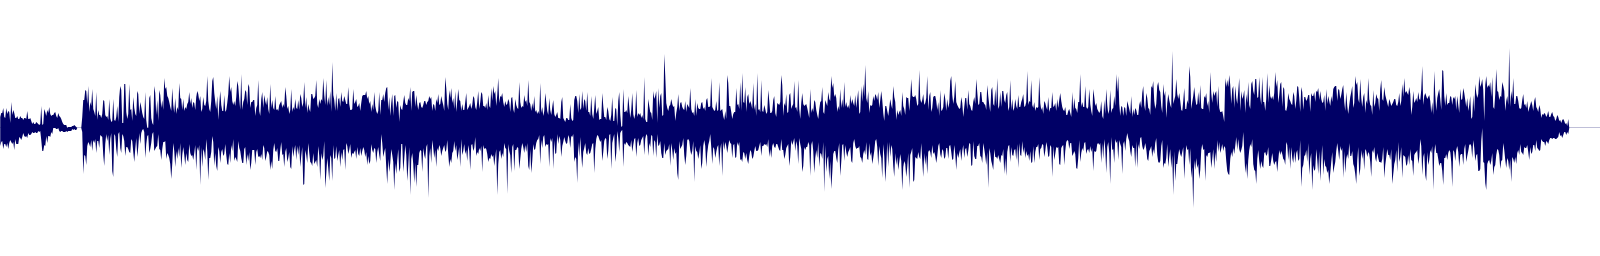 waveform of track #131683